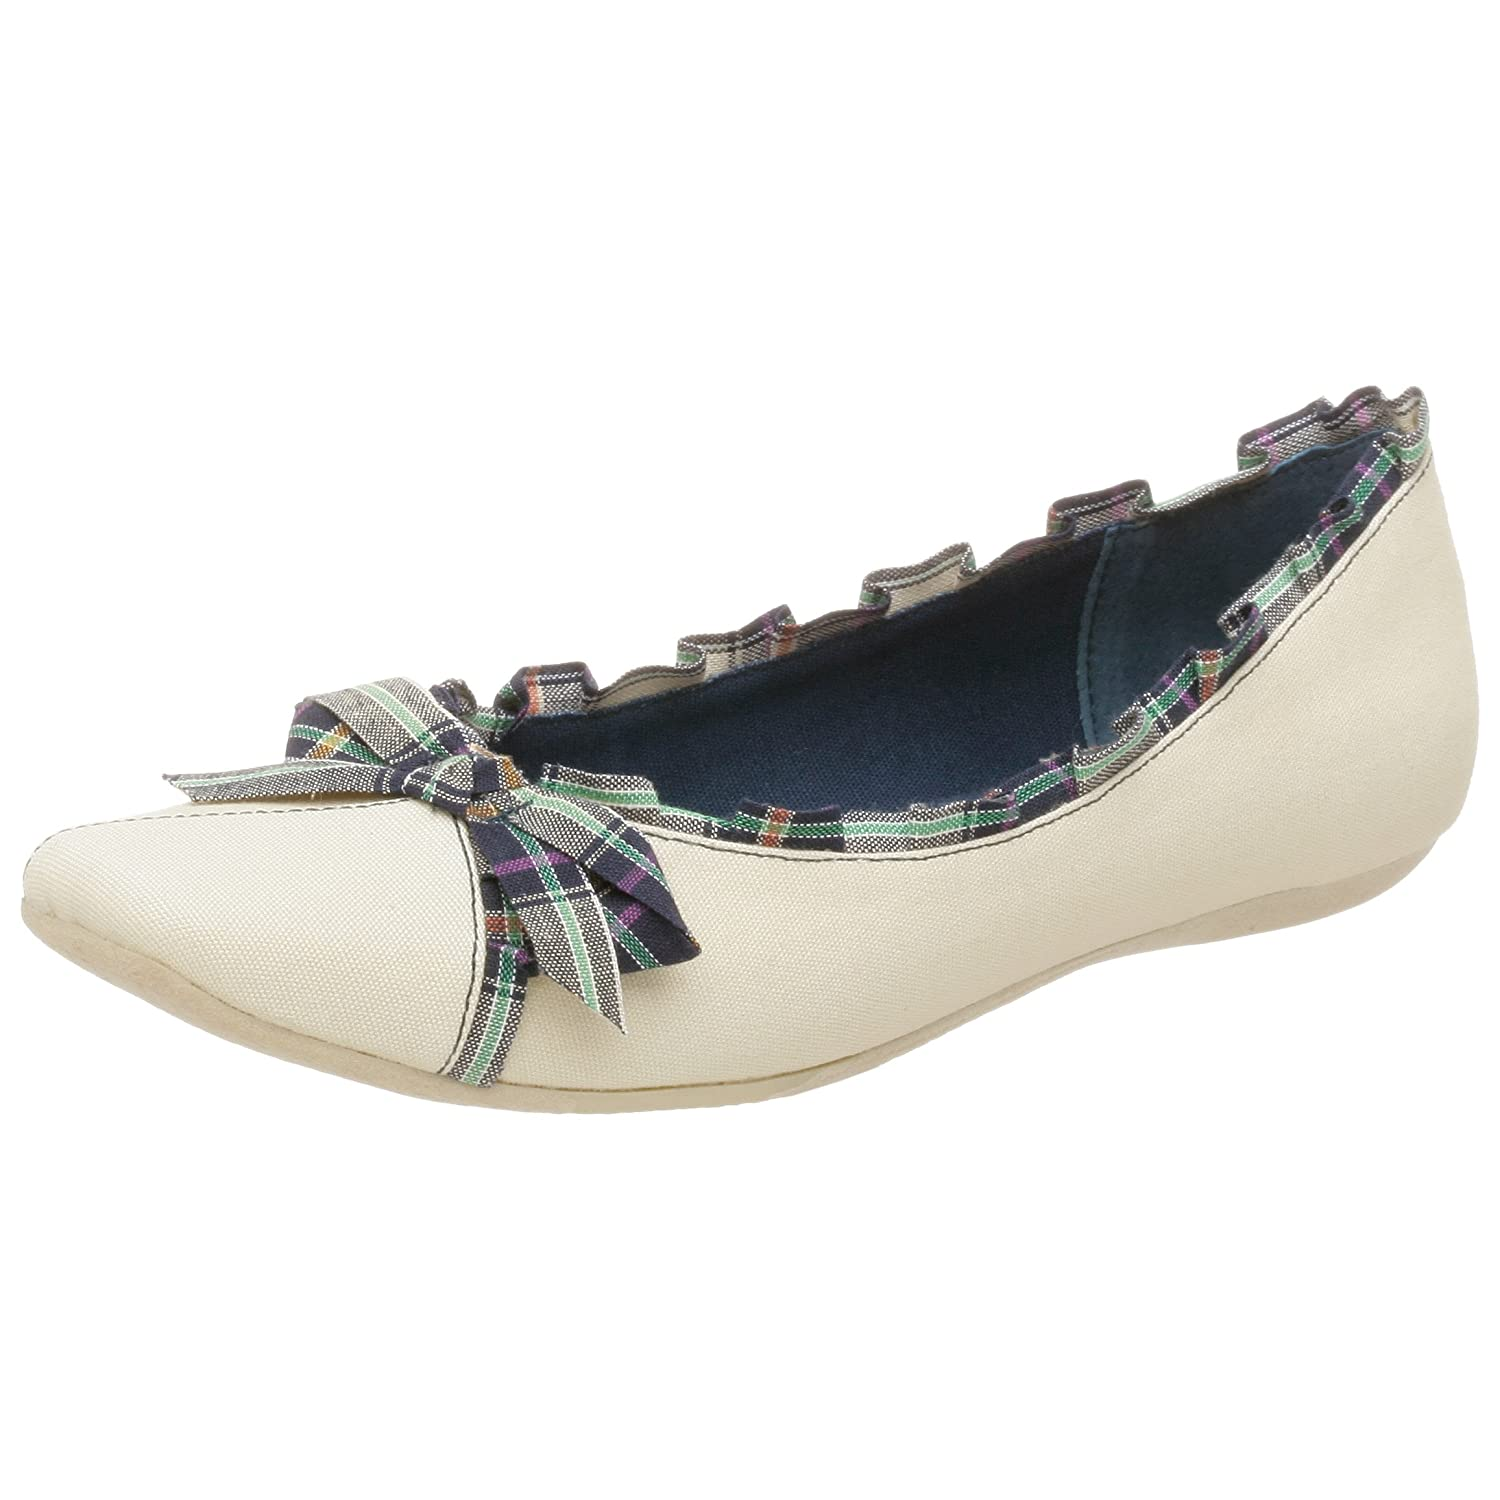 Endless.com: BC Footwear Women's Babycakes Canvas Ballet Flat: Flats & Loafers